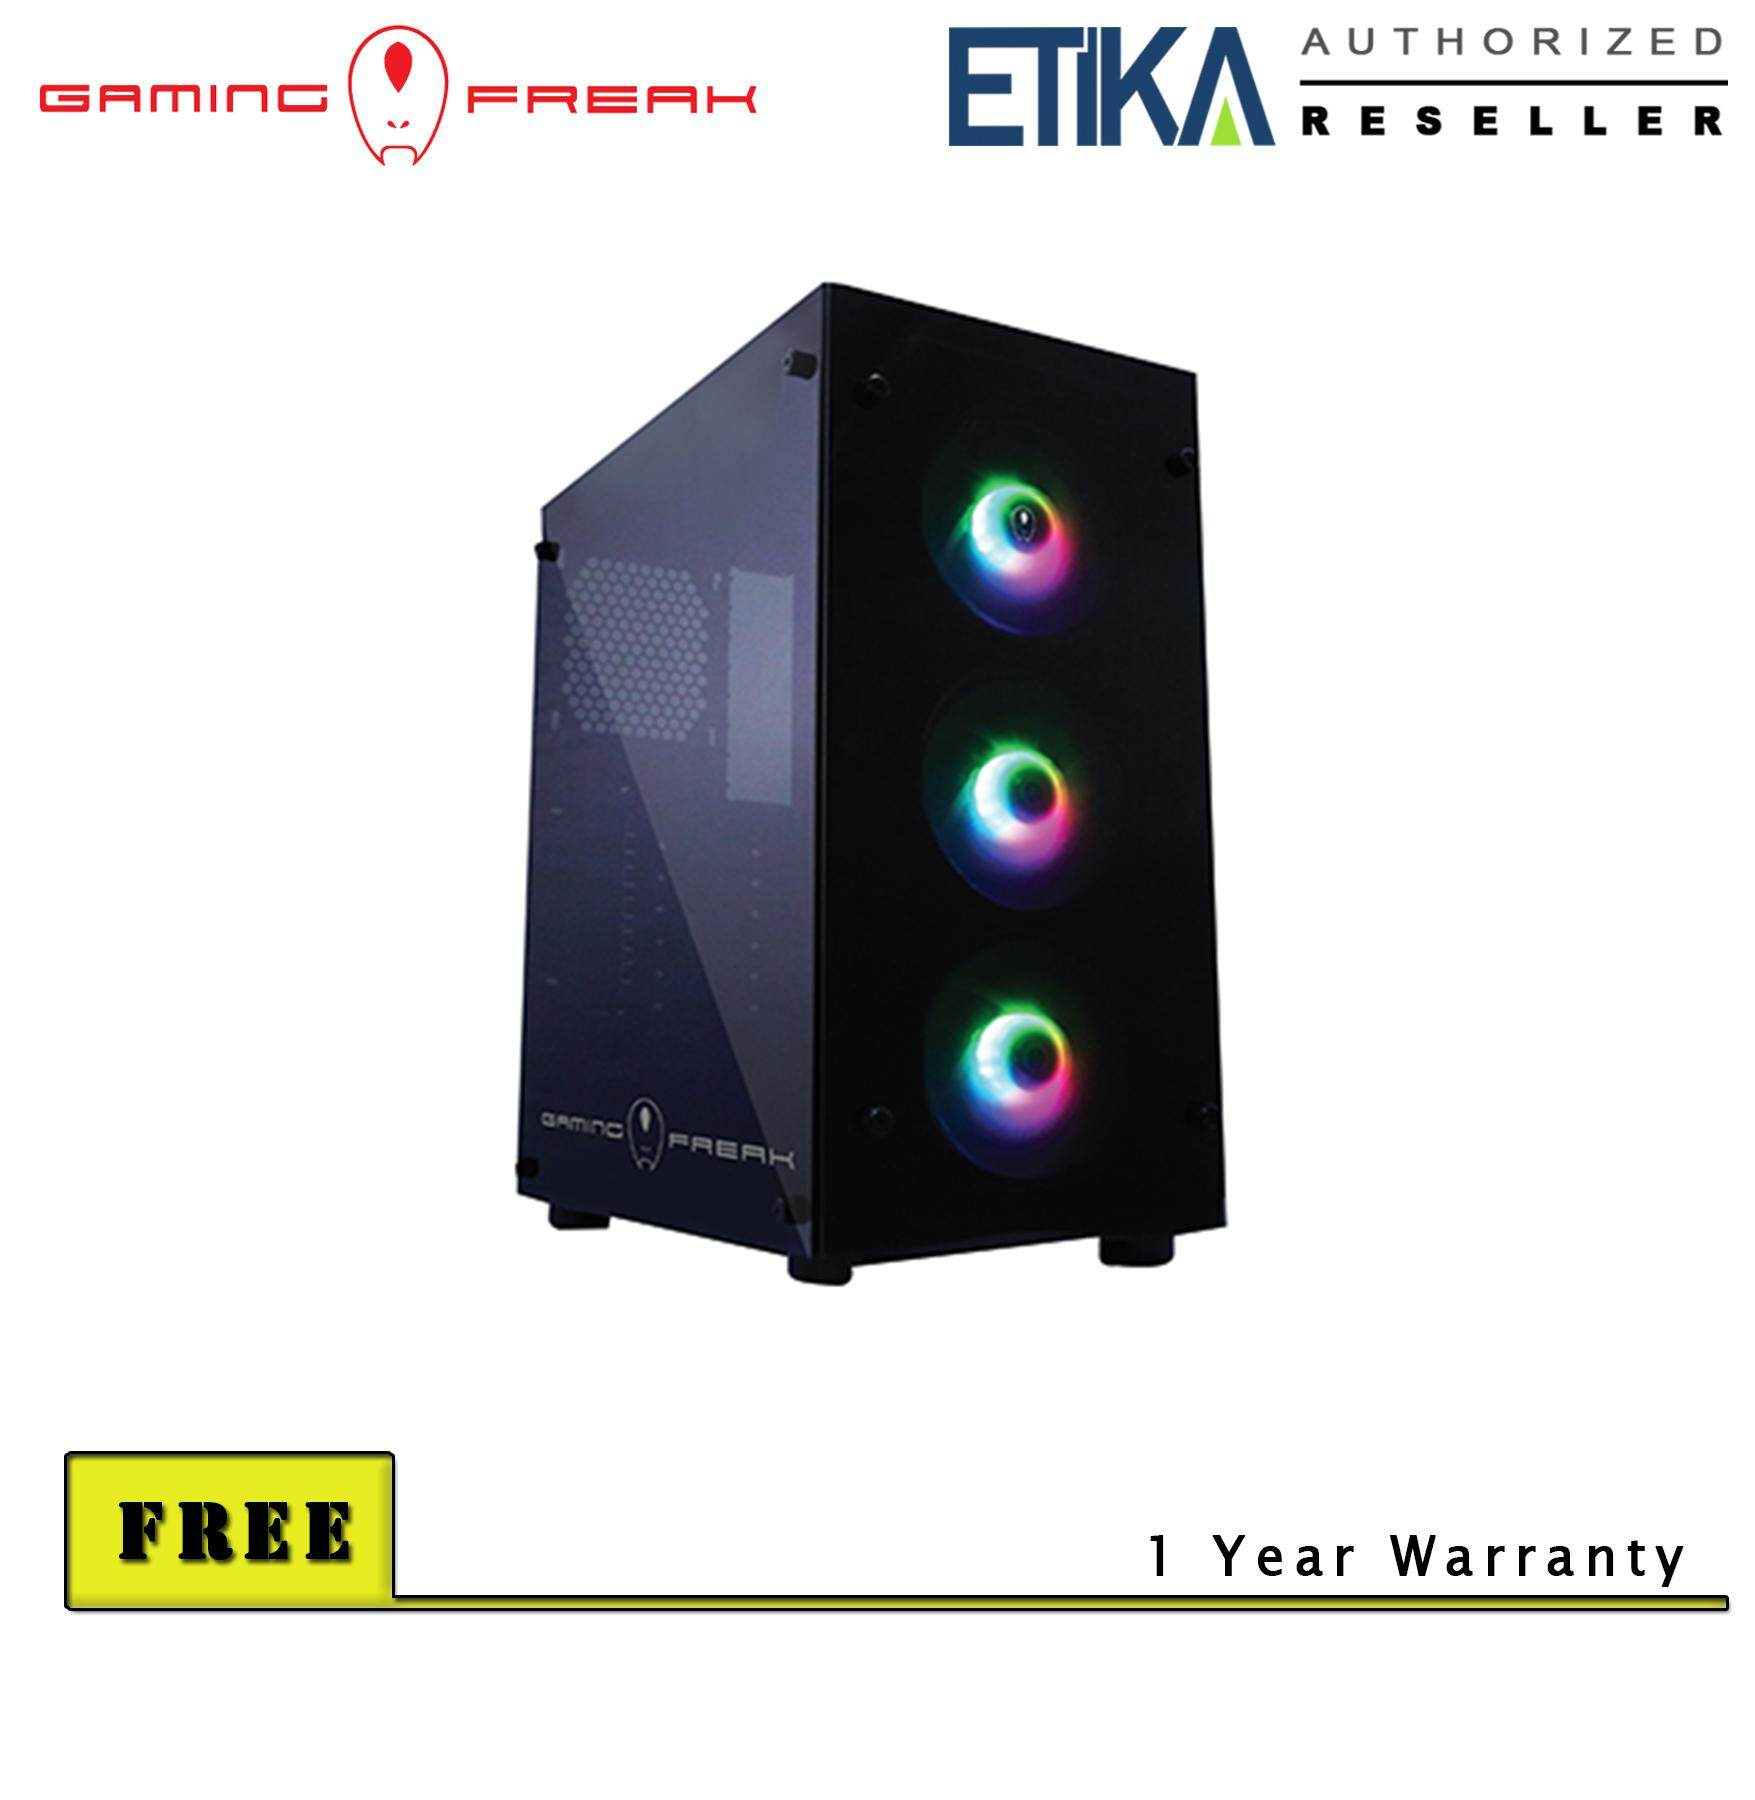 Gaming Freak 80G Ghost Gaming Tower Chassis Malaysia